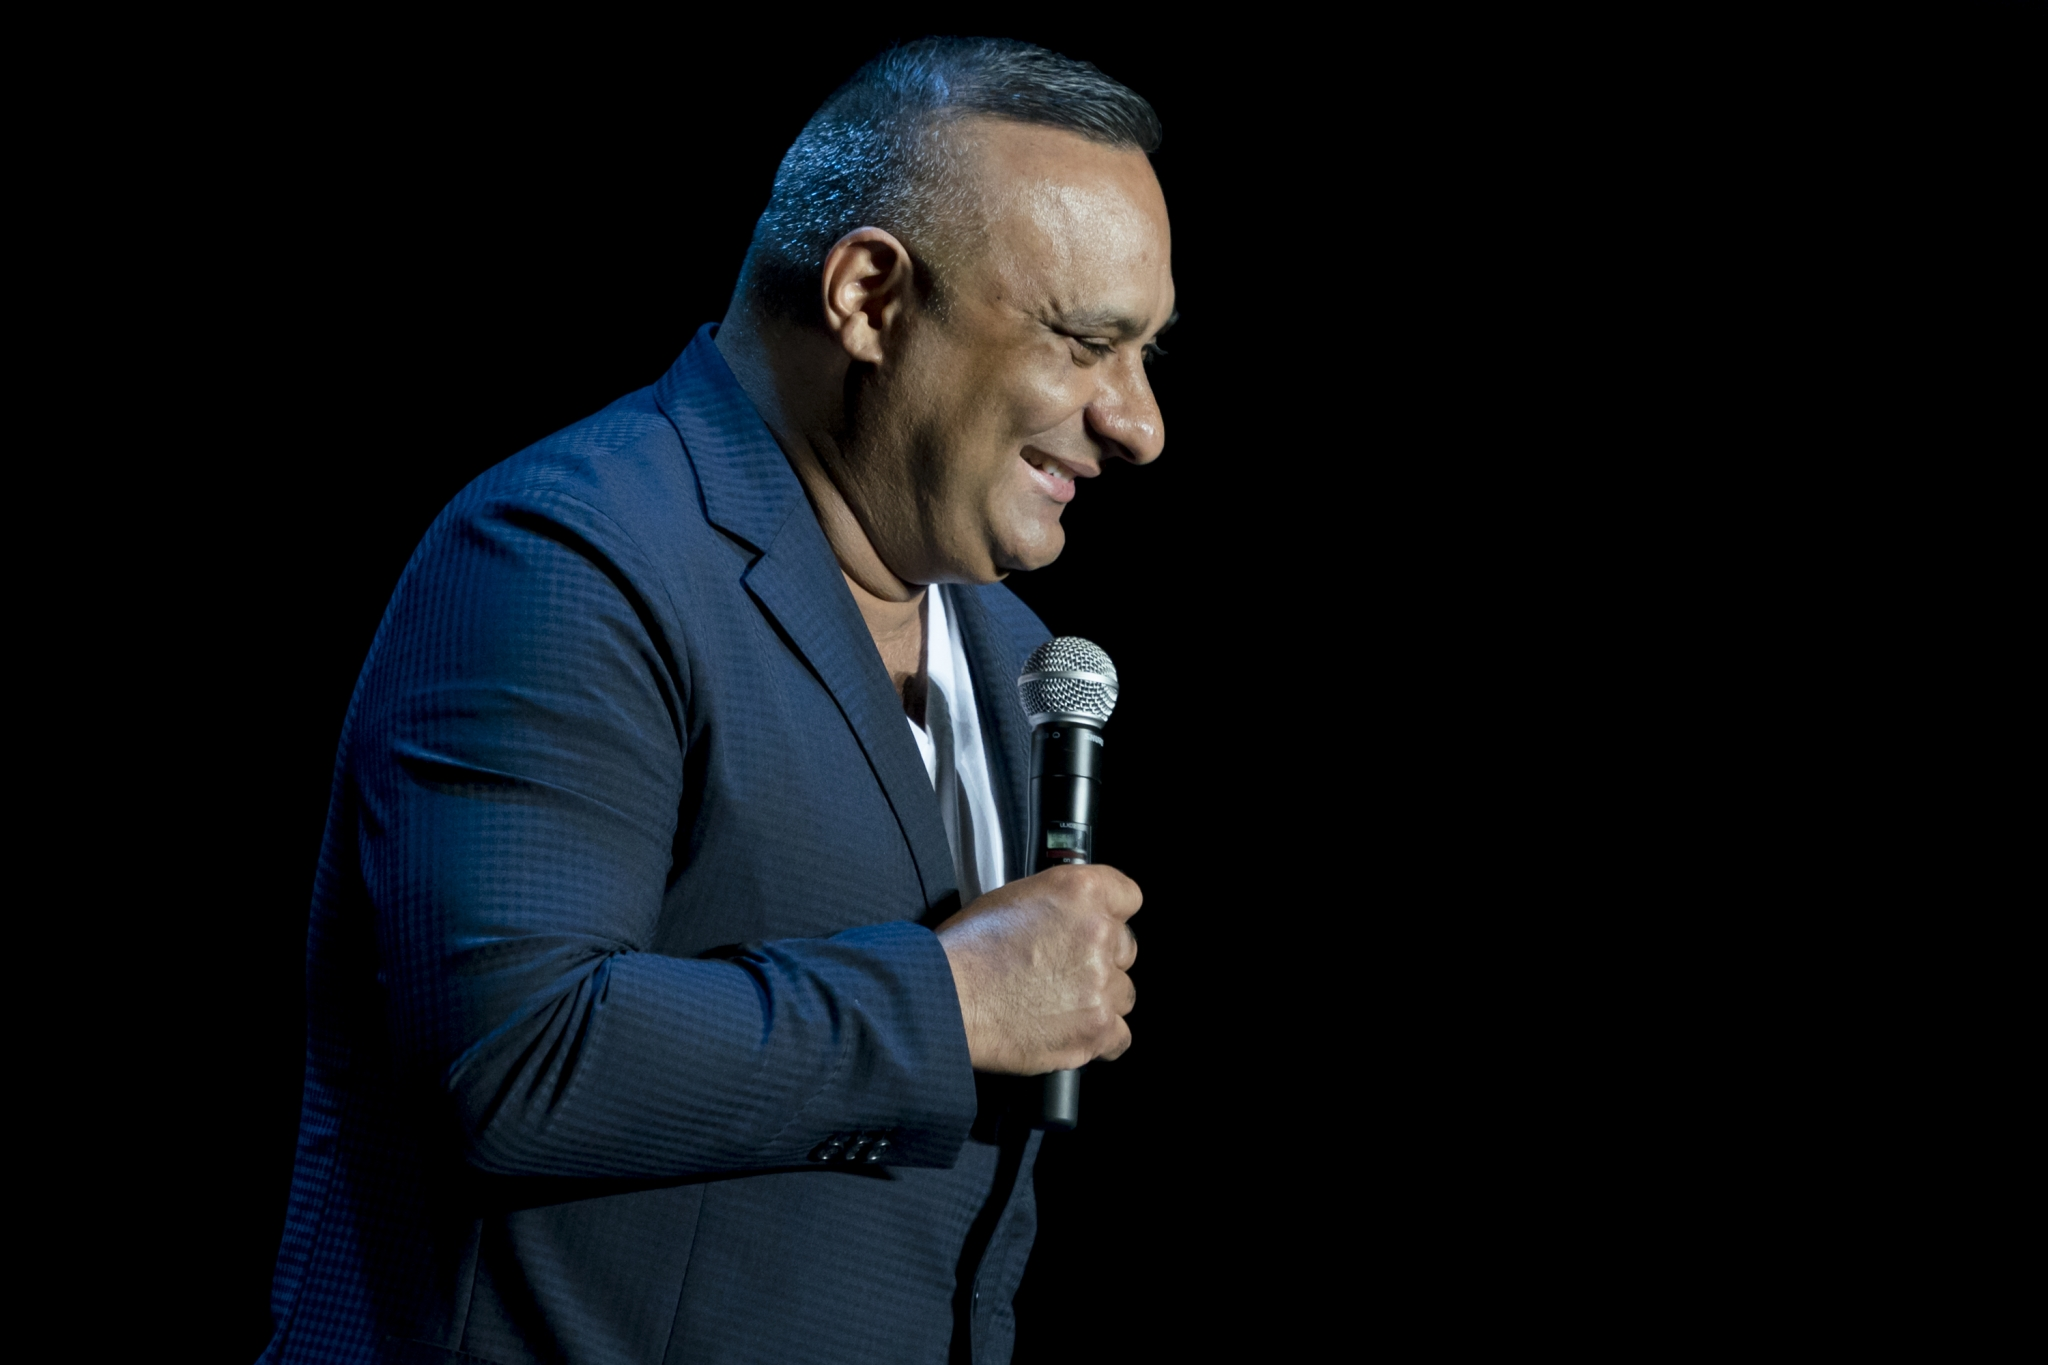 Russell Peters laughs along with the audience as he delivers quip after quip